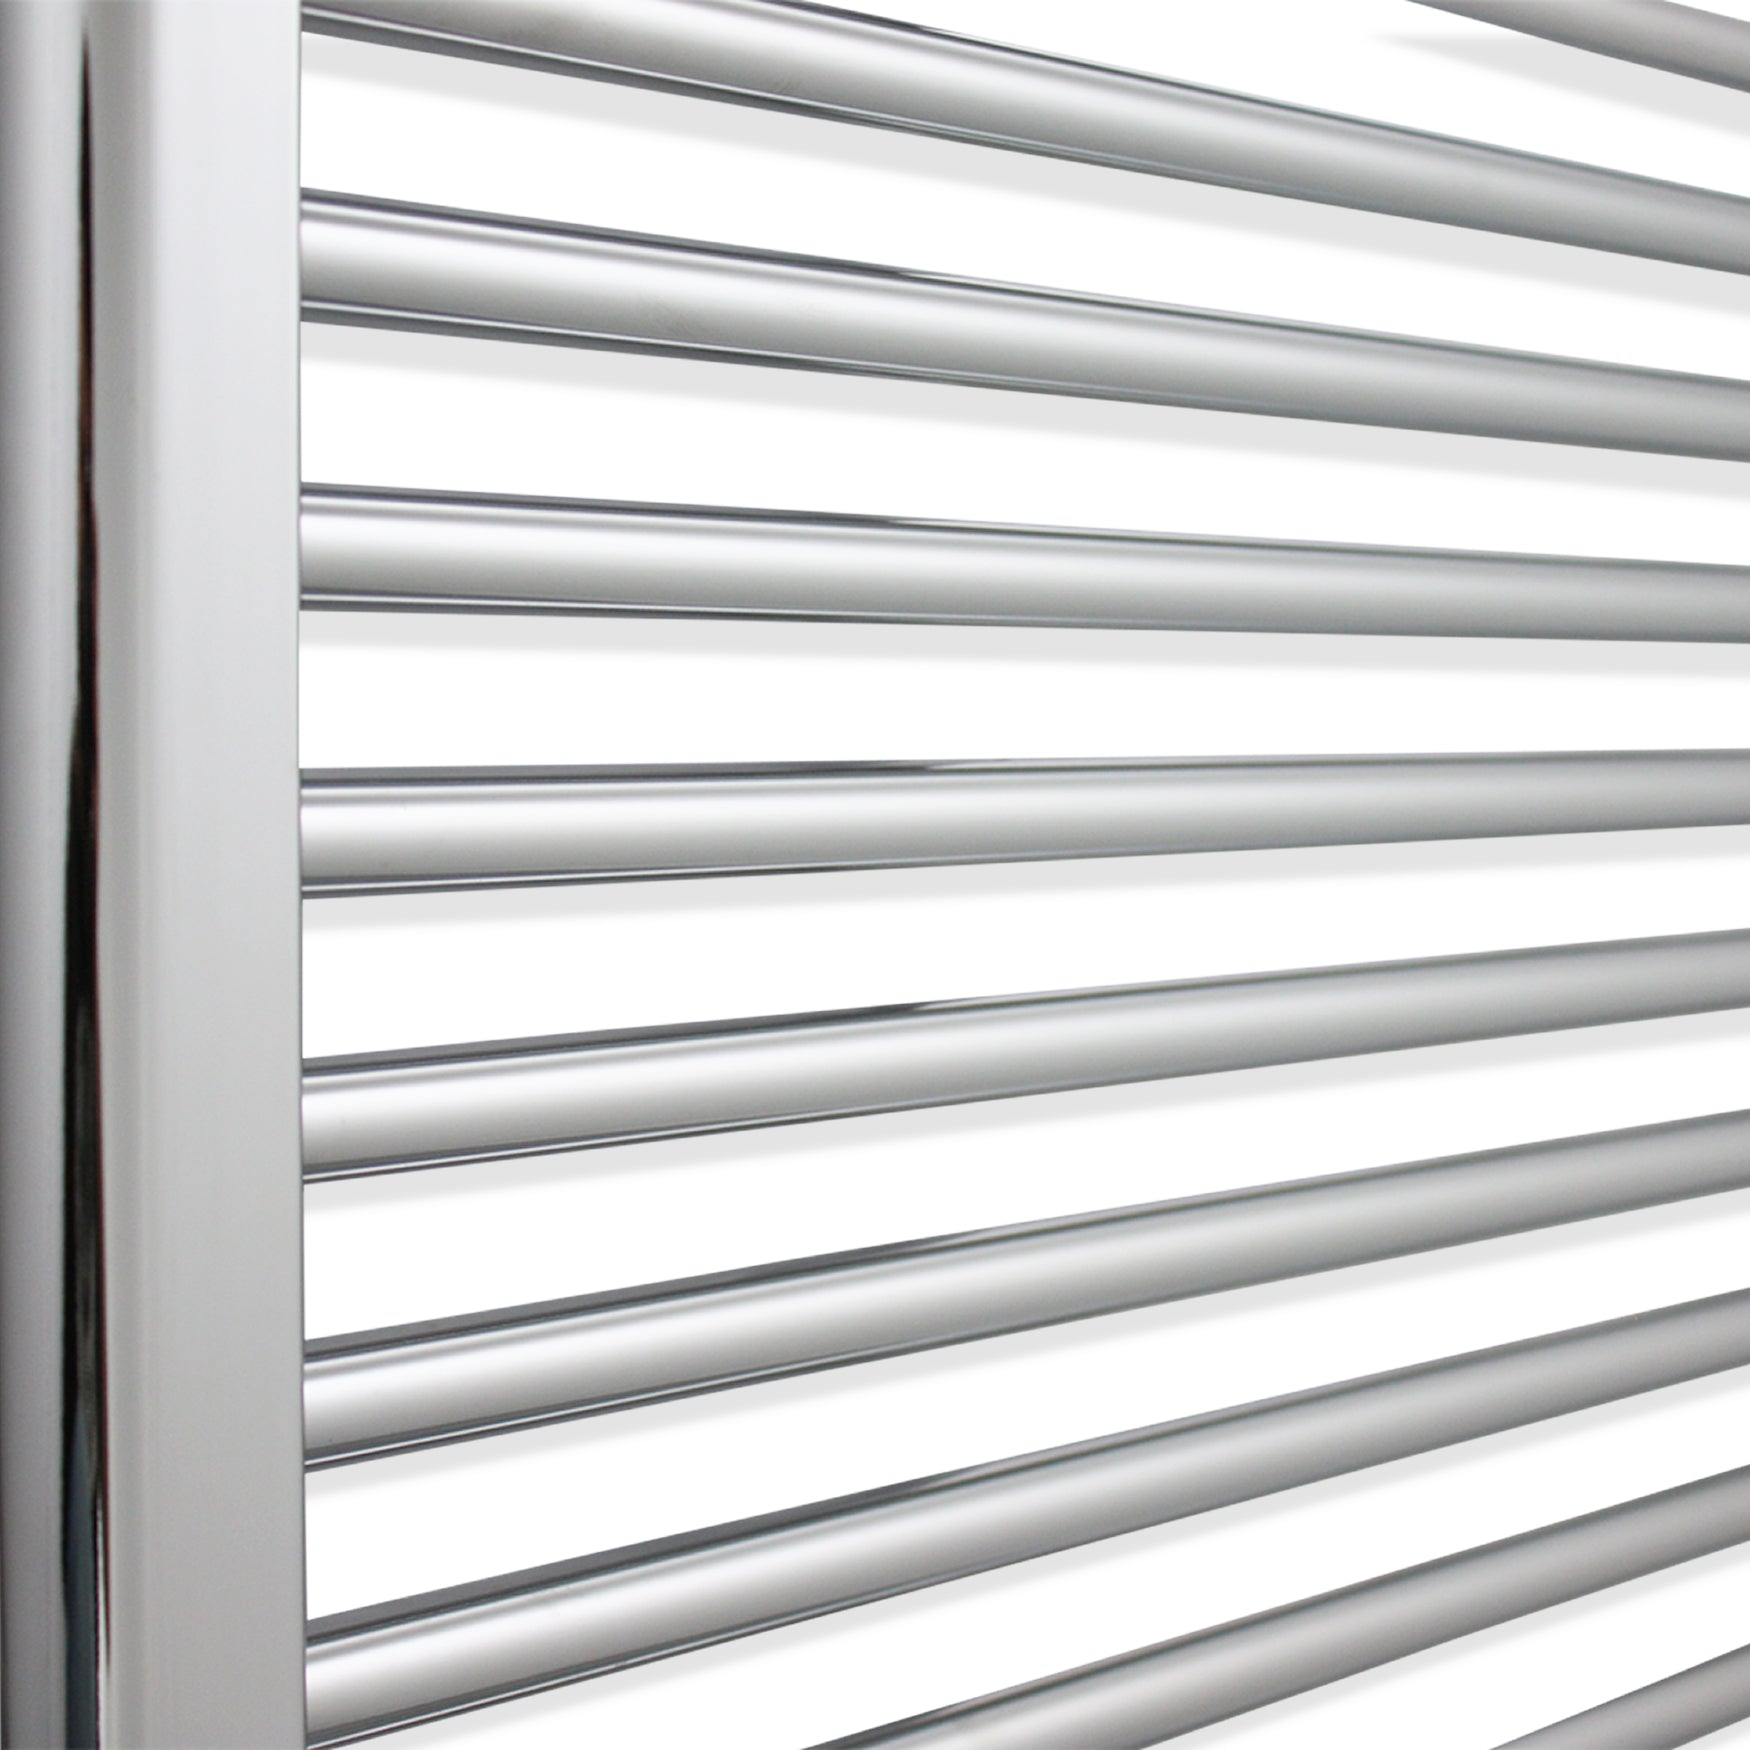 300mm Wide 1200mm High Flat Chrome Heated Towel Rail Radiator